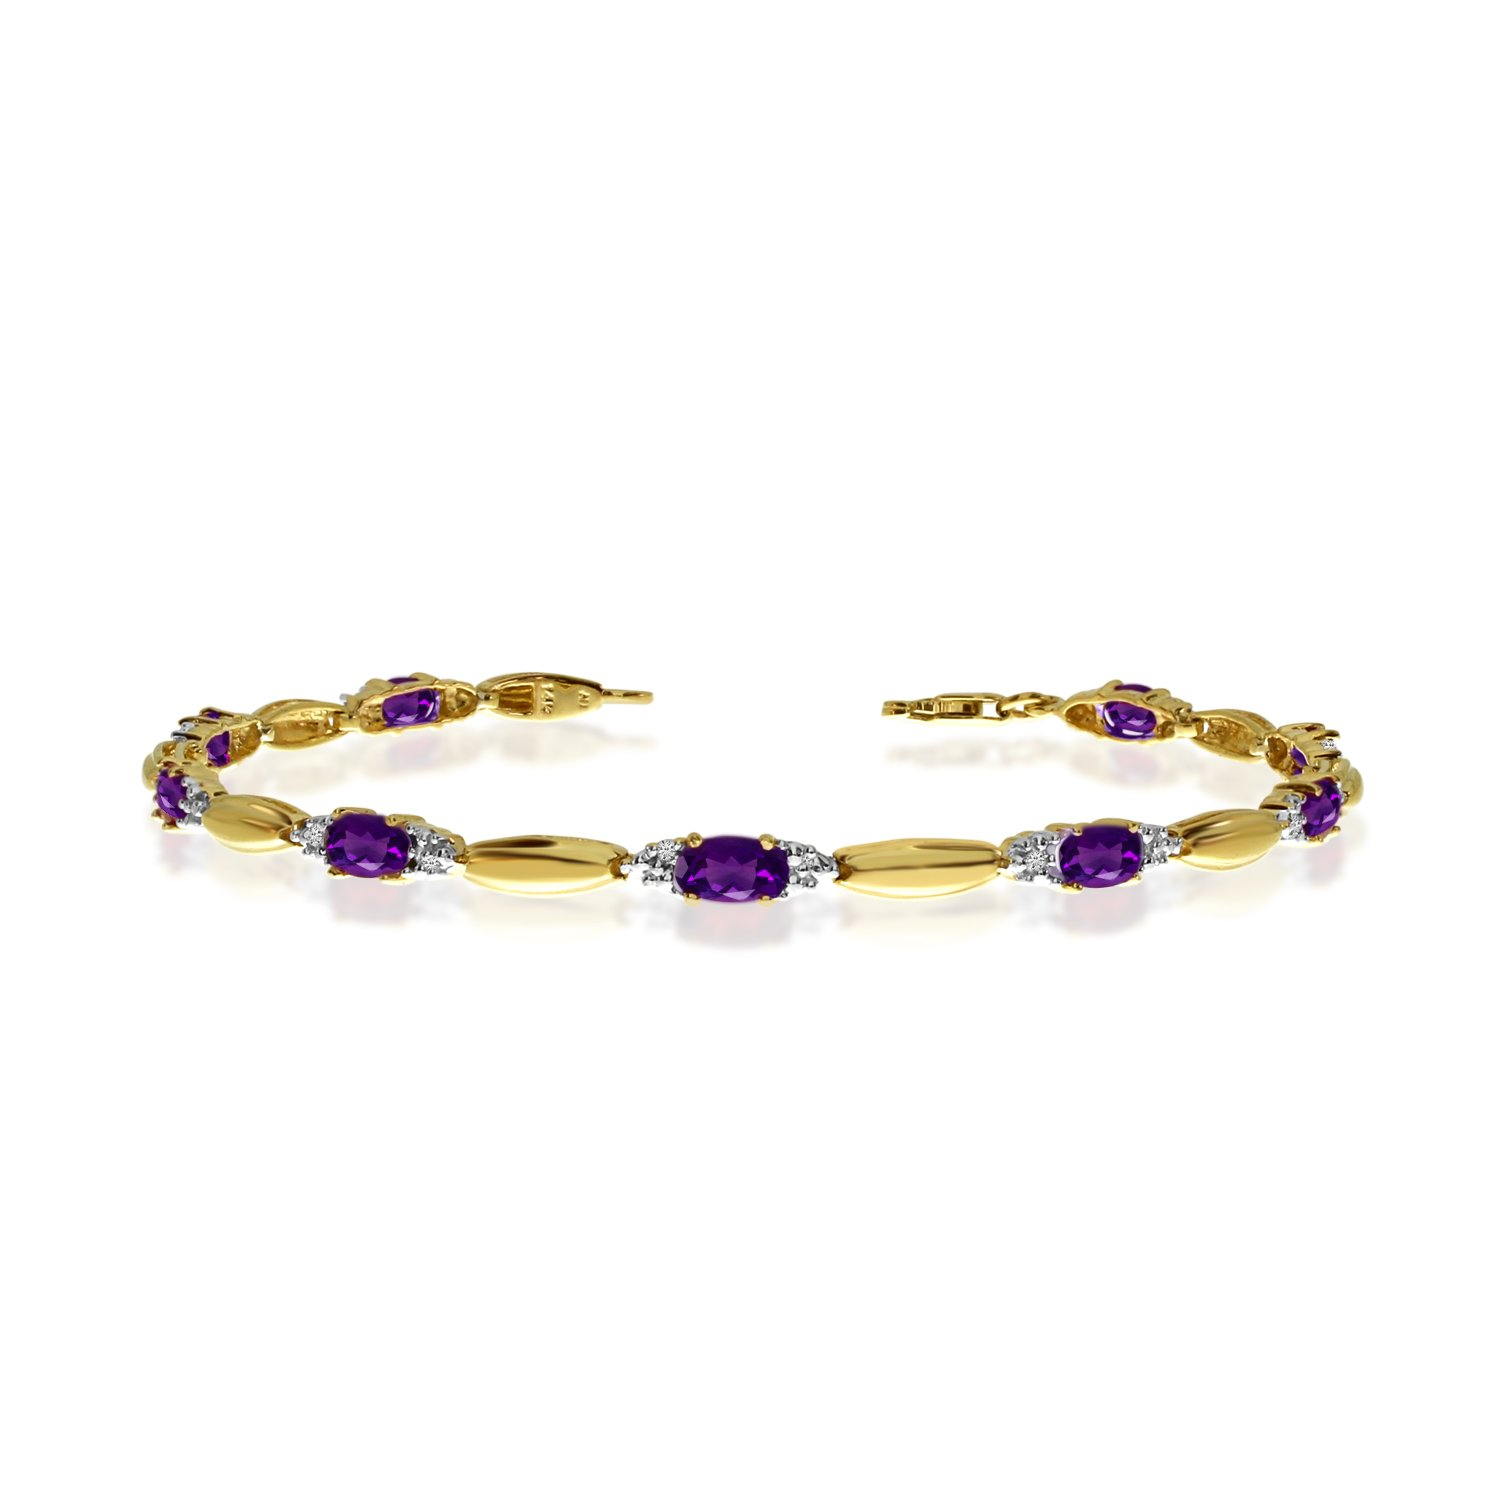 14K Yellow Gold Oval Amethyst and Diamond Bracelet (7 Inch Length) by Direct-Jewelry (Image #1)